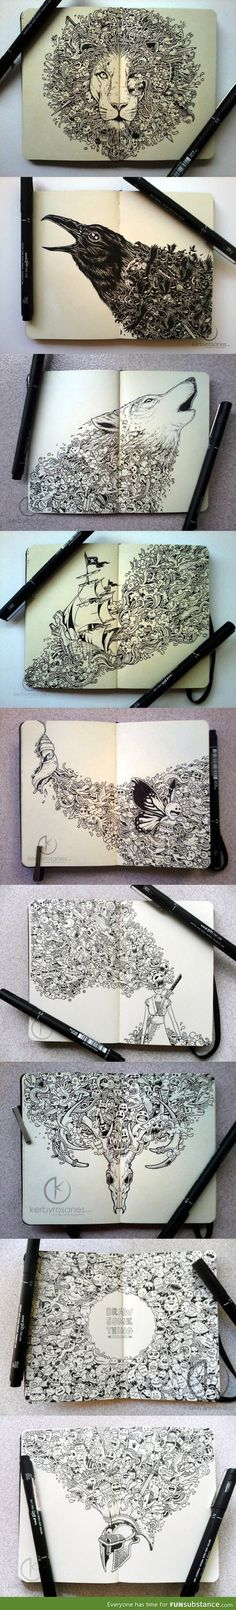 Incredible moleskine drawings.... if anyone knows the artist speak up! I need to give credit and major props.